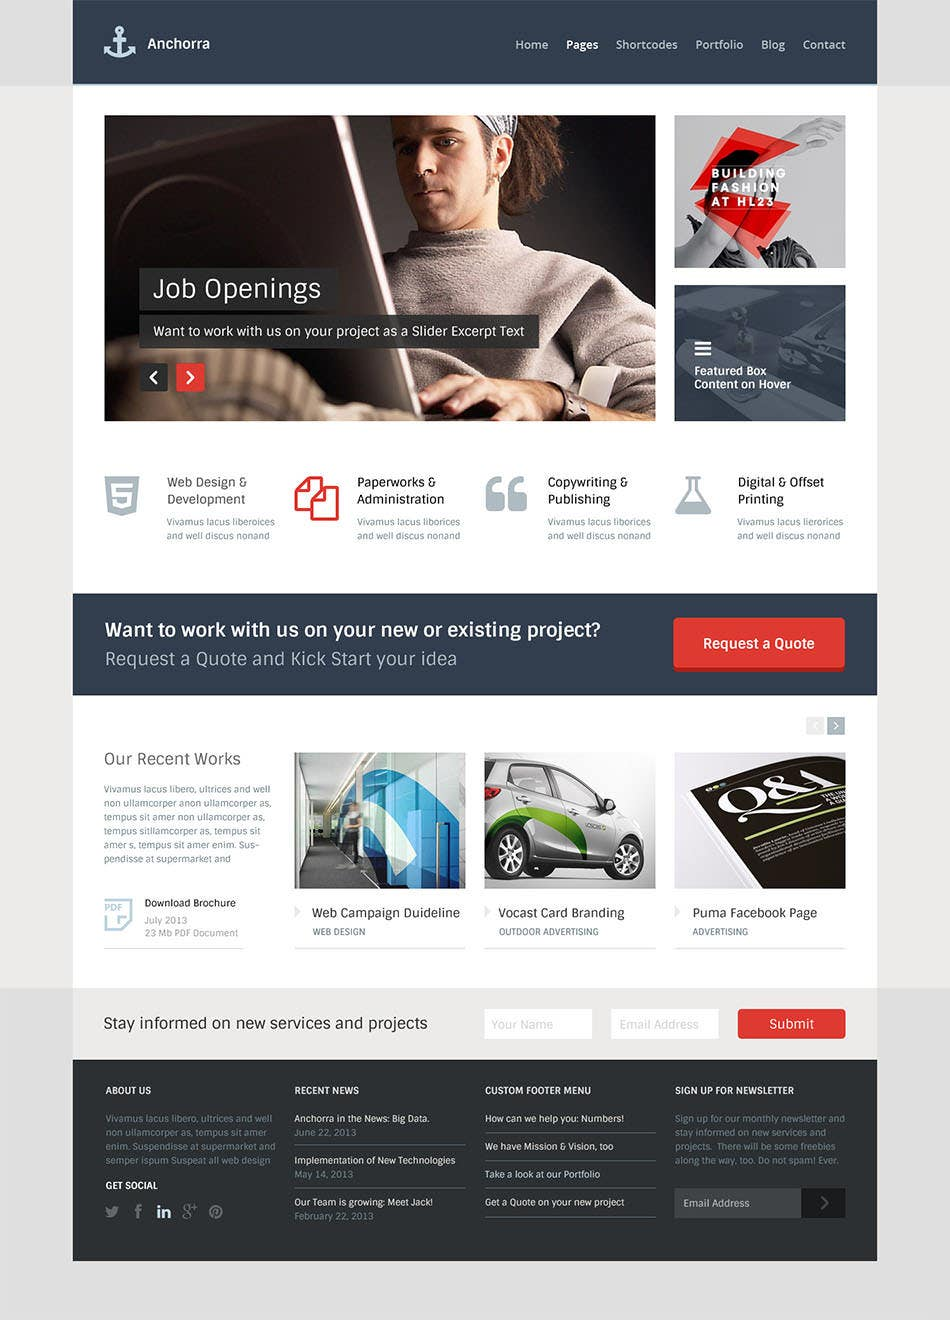 anchorra multipurpose website psd template